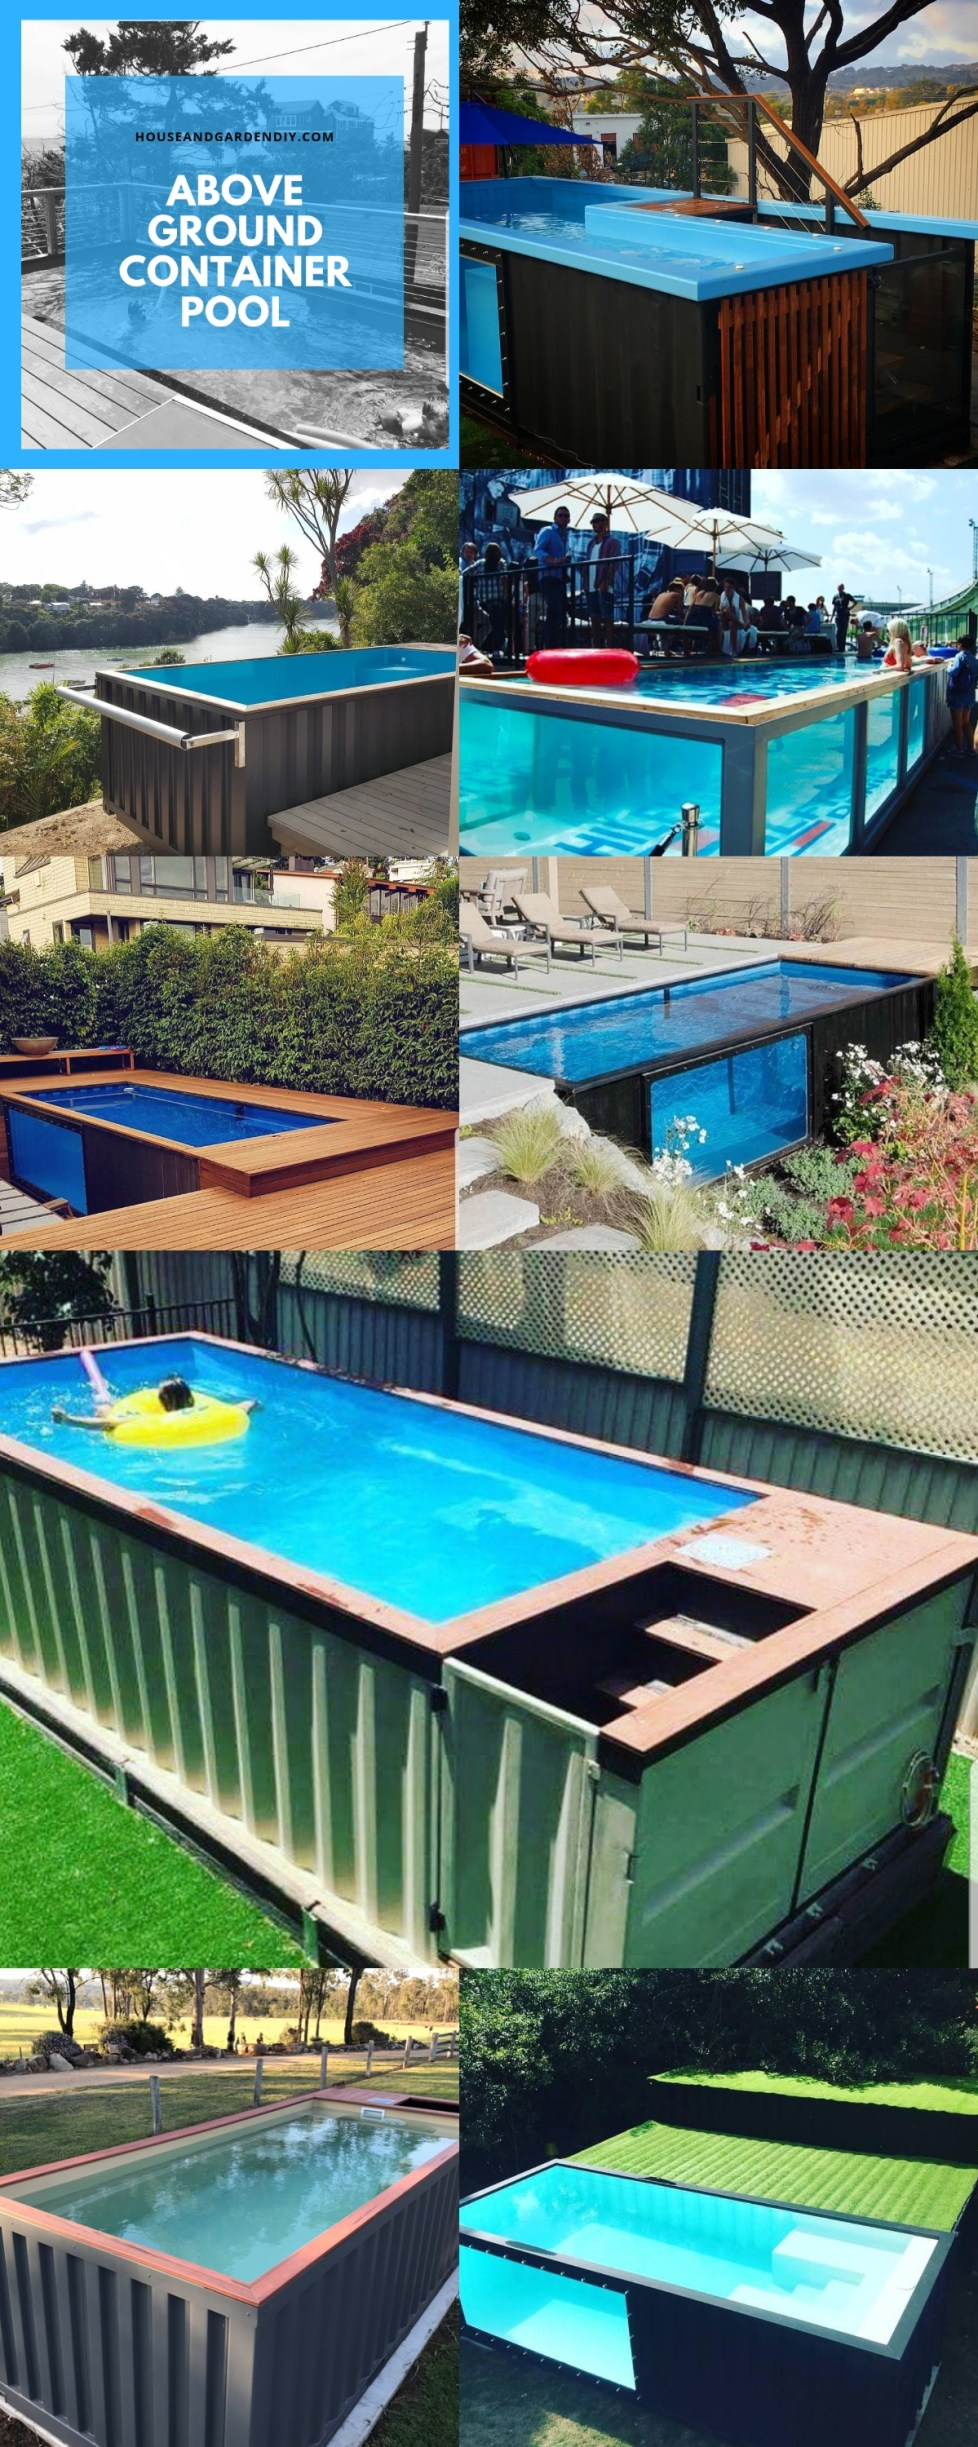 Above Ground Container Pool